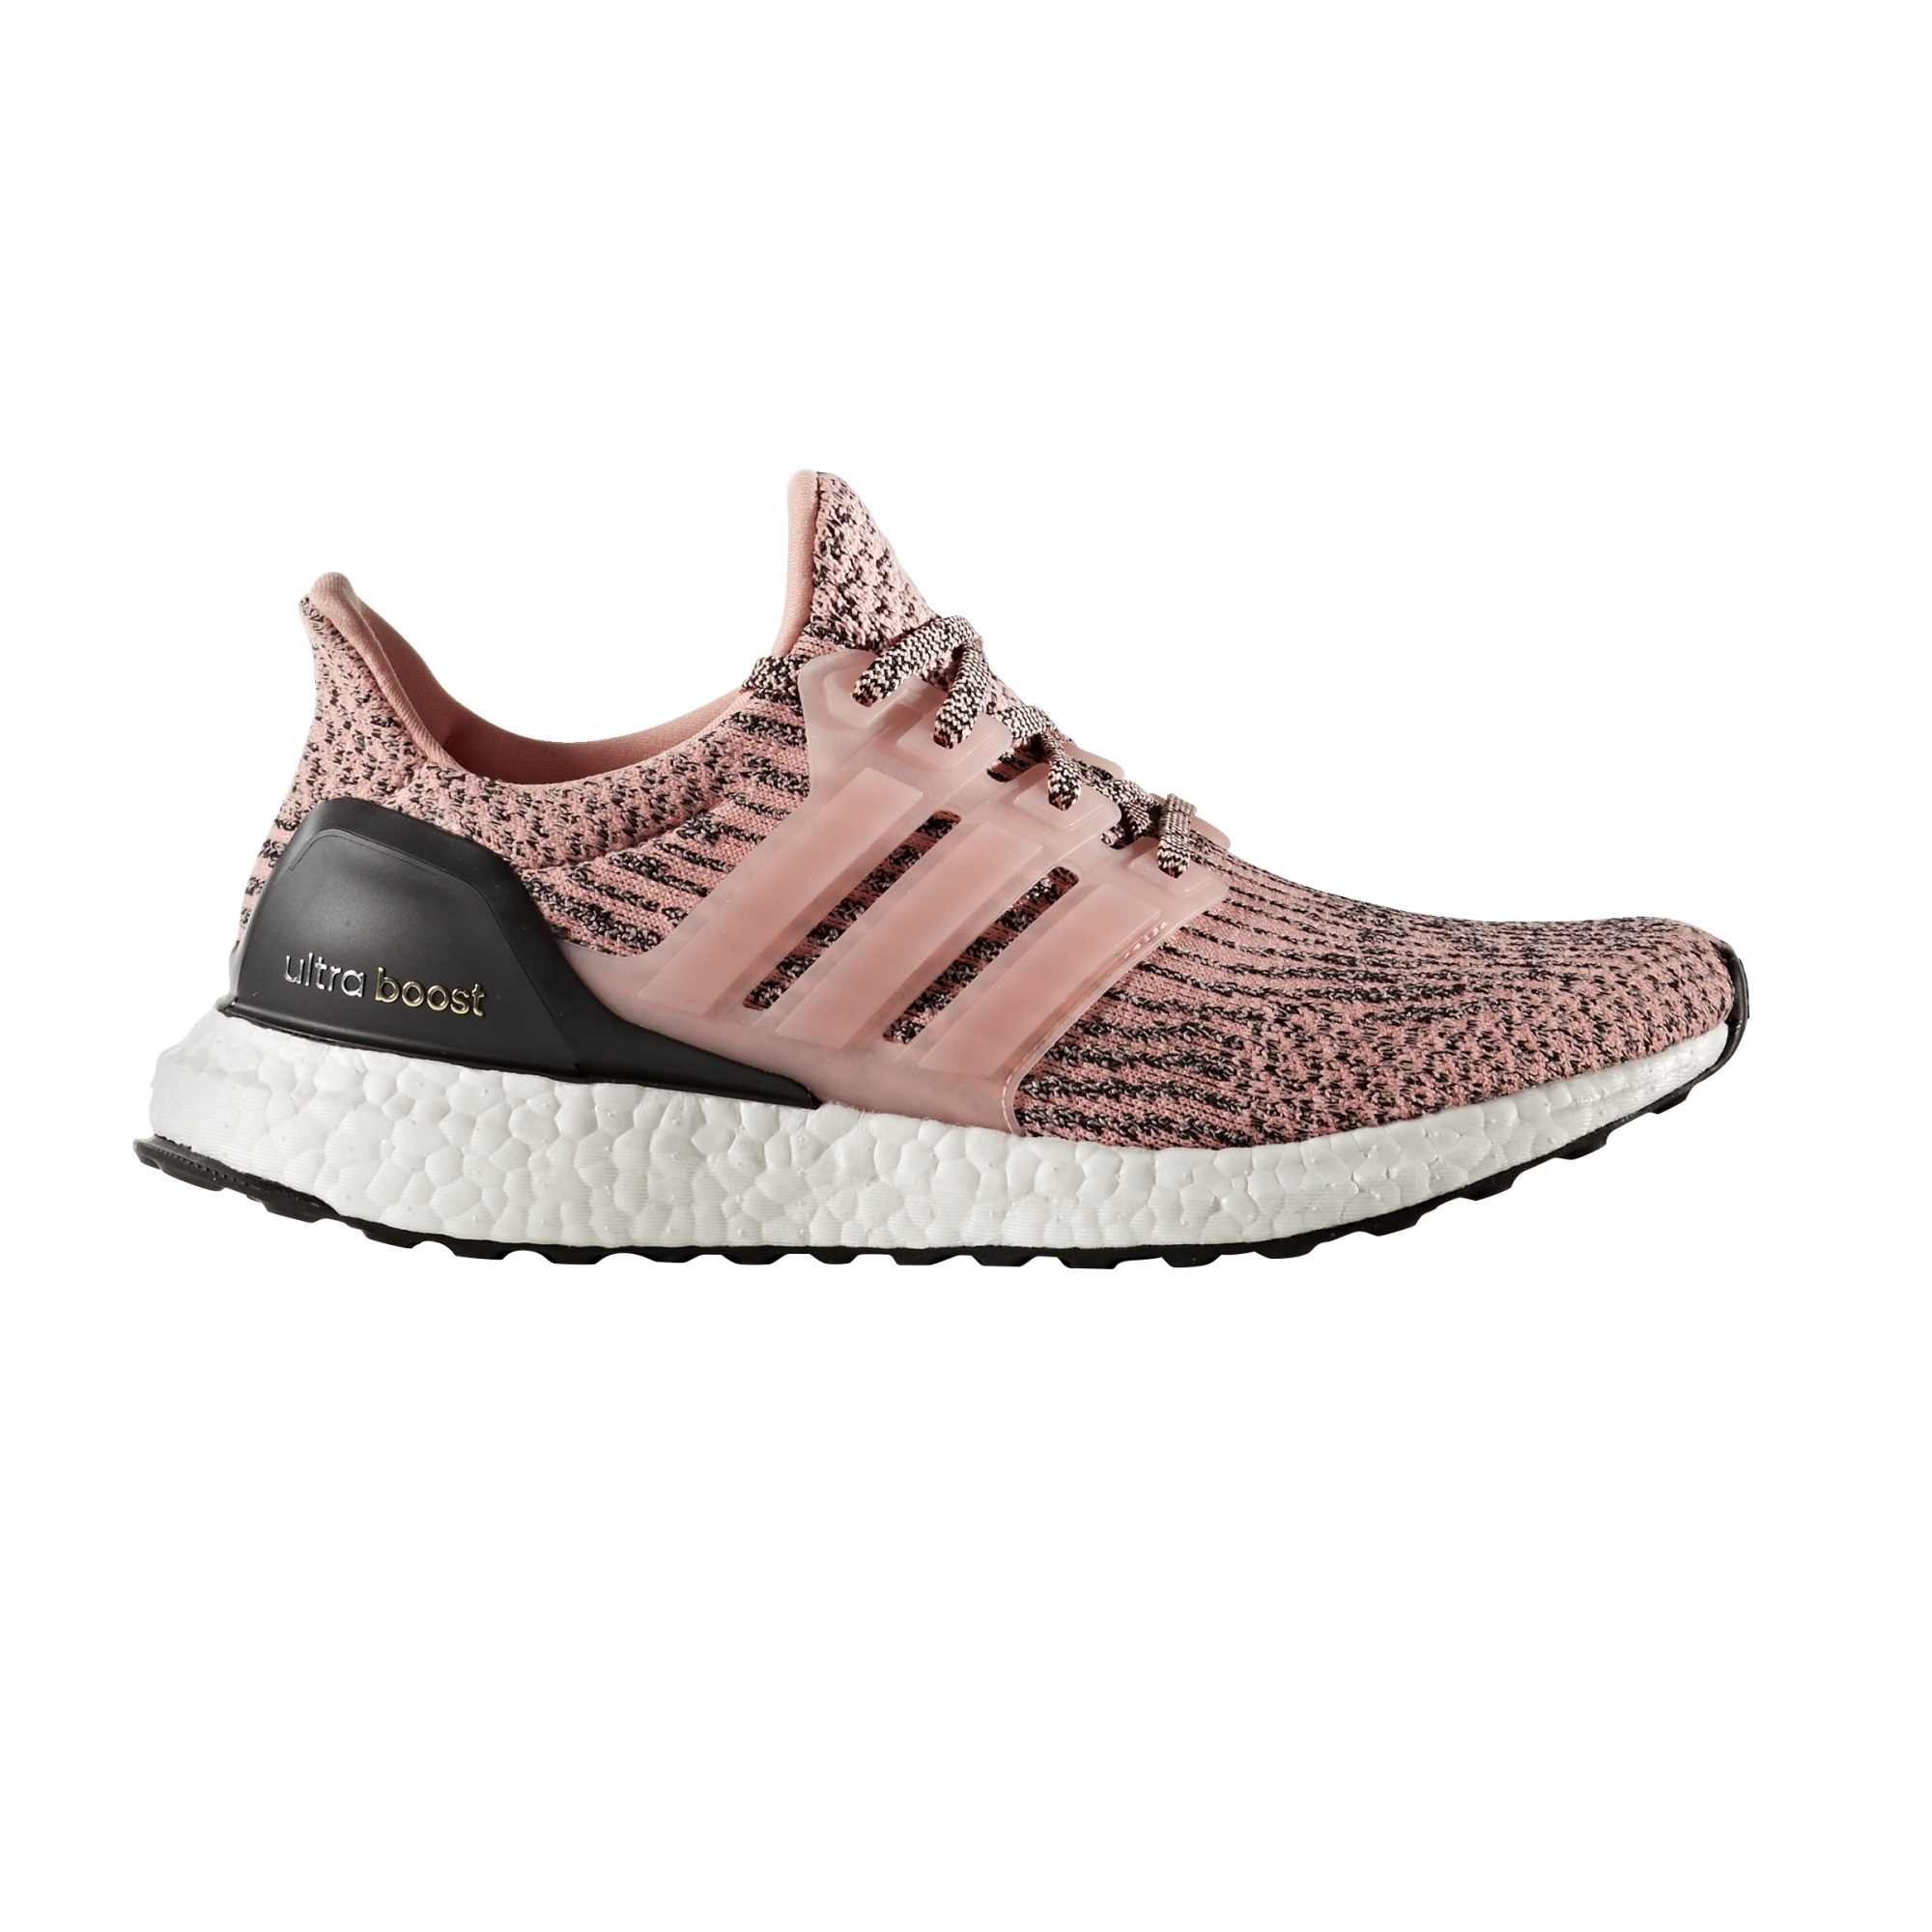 822c268f2a9 Adidas Ultraboost Women s Running Shoes